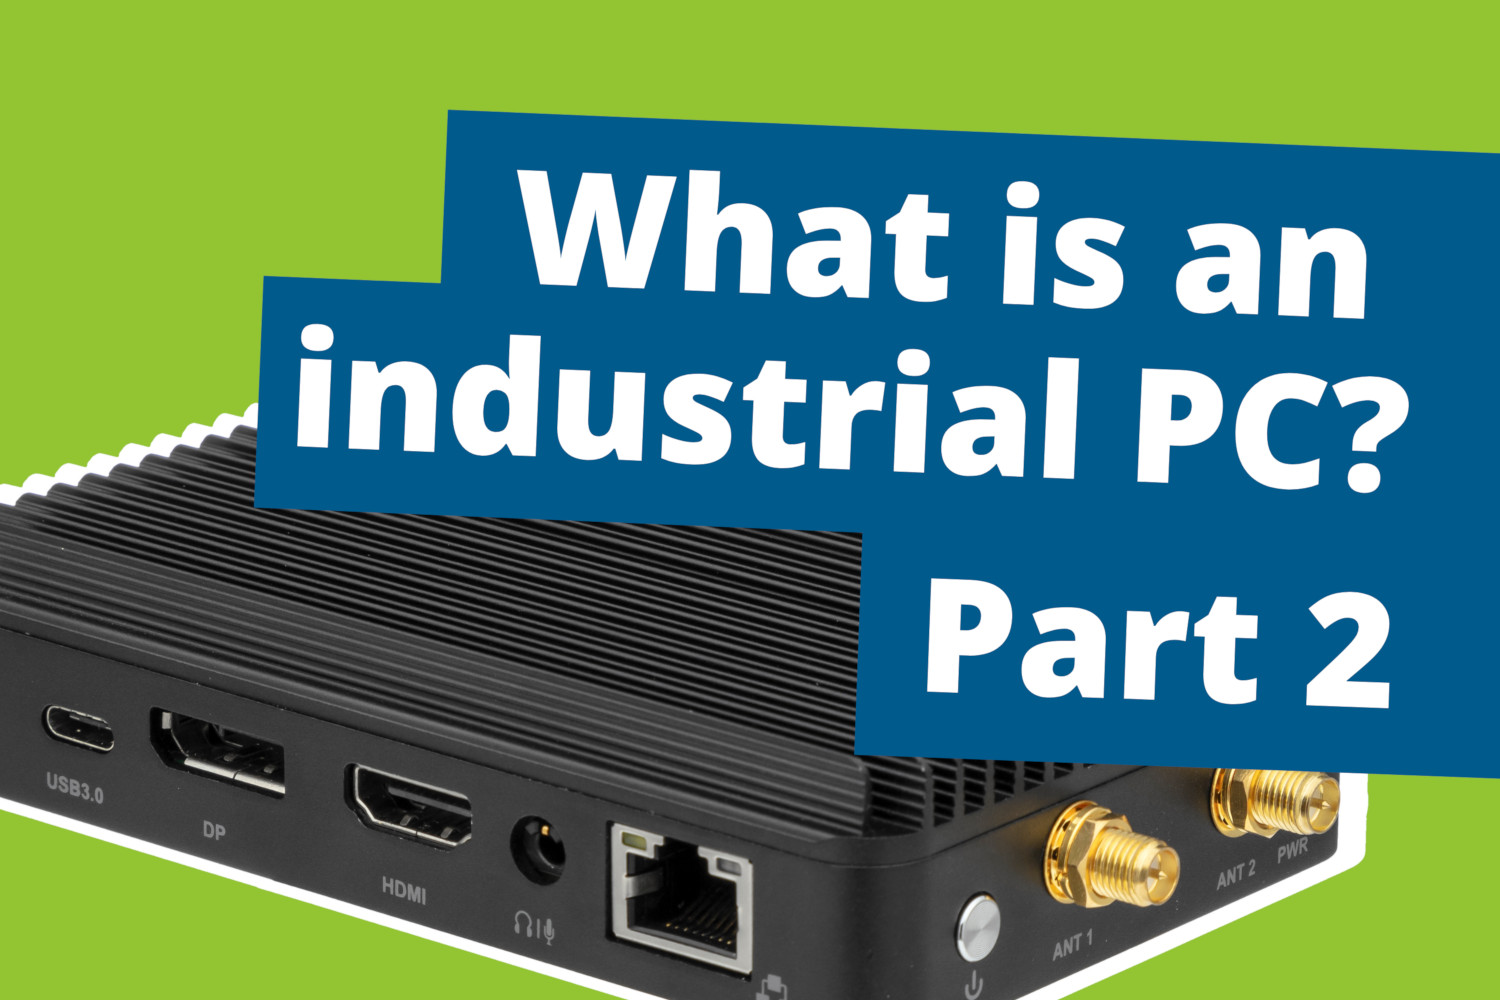 Industrial PCs part 2: Energy efficiency